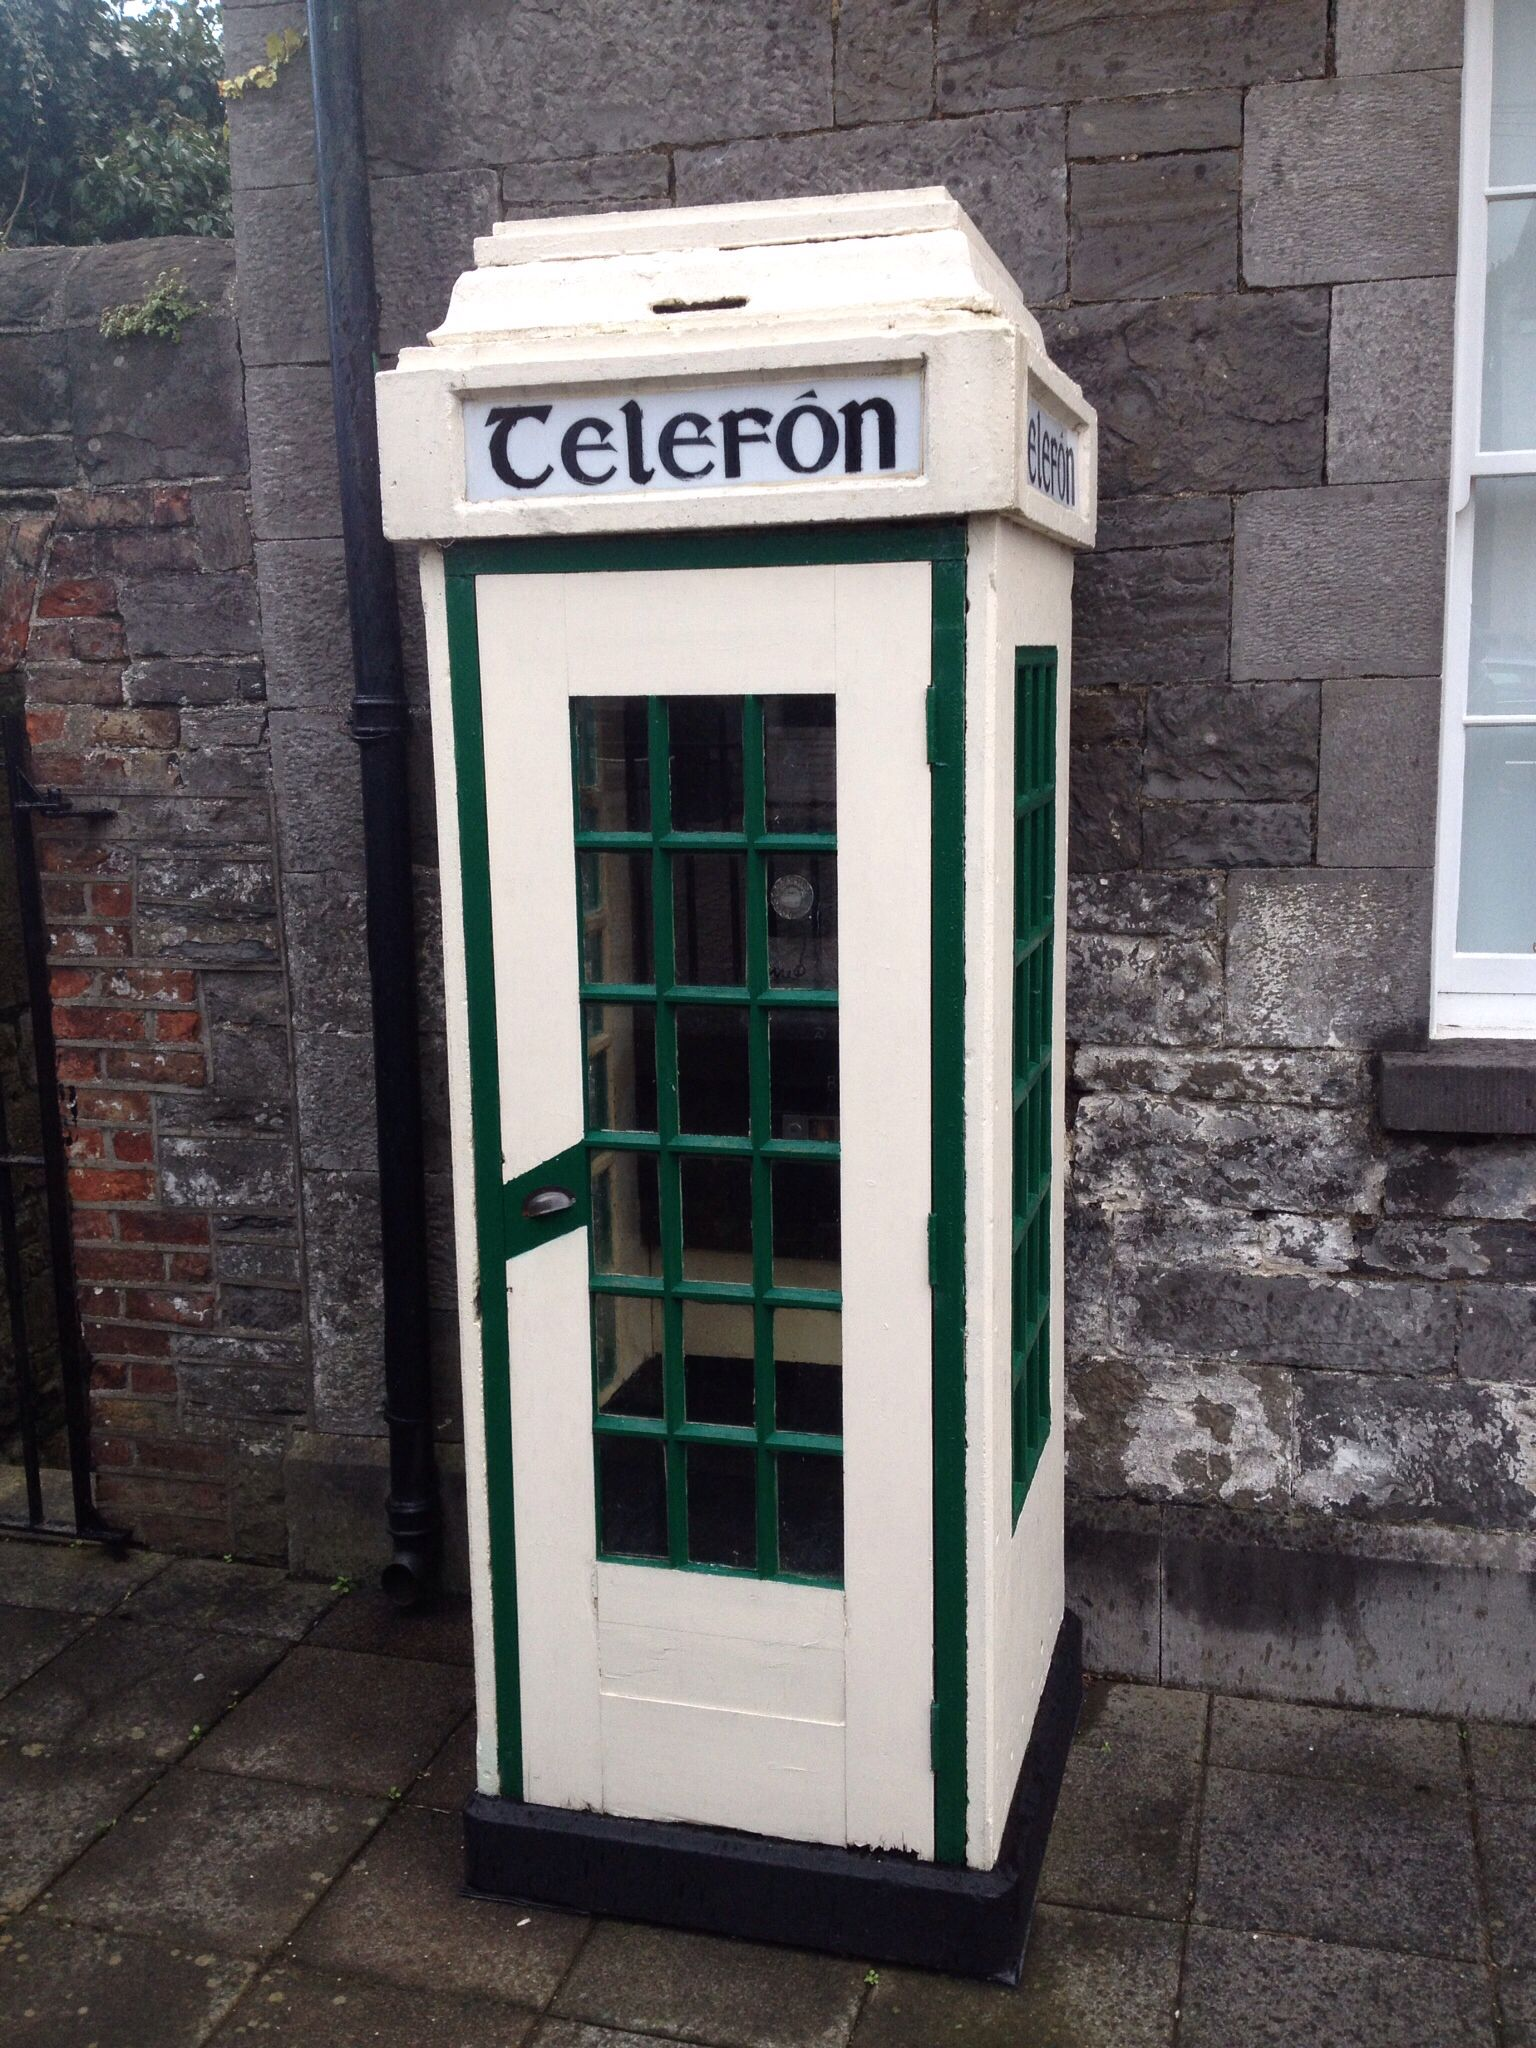 Old phone booth | Ireland in 2019 | Telephone booth, Phone, Old phone